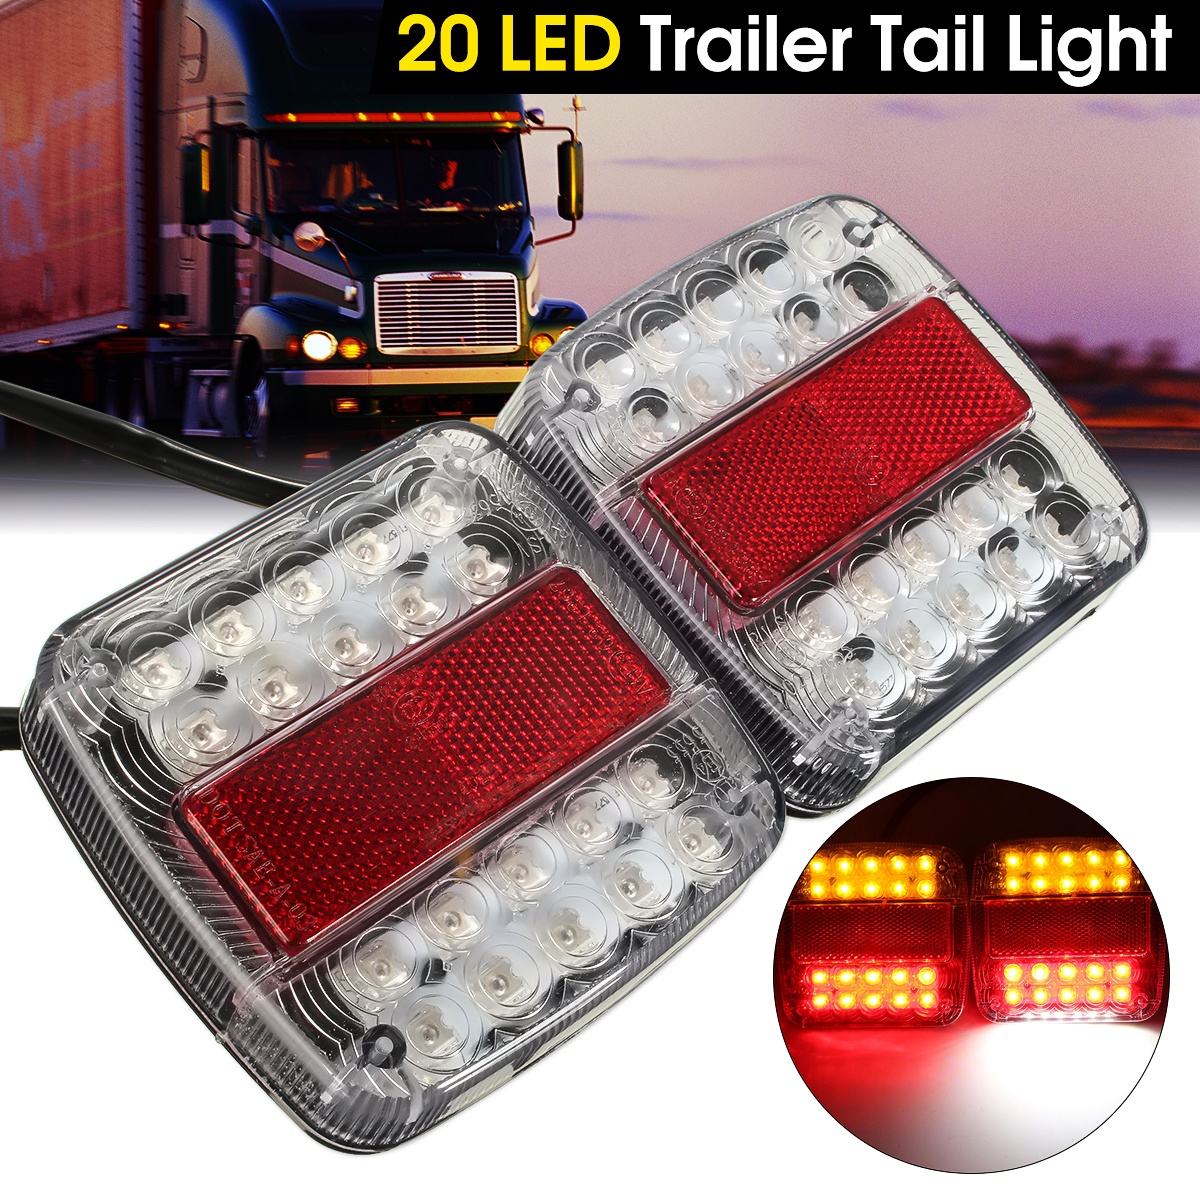 2x 12V 26 LED Taillight Turn Signal Light Rear Brake Stop Light Number License Plate Lamp For Car Truck Trailer E-Marked батарейки duracell basic lr6 4bl aa 4 шт